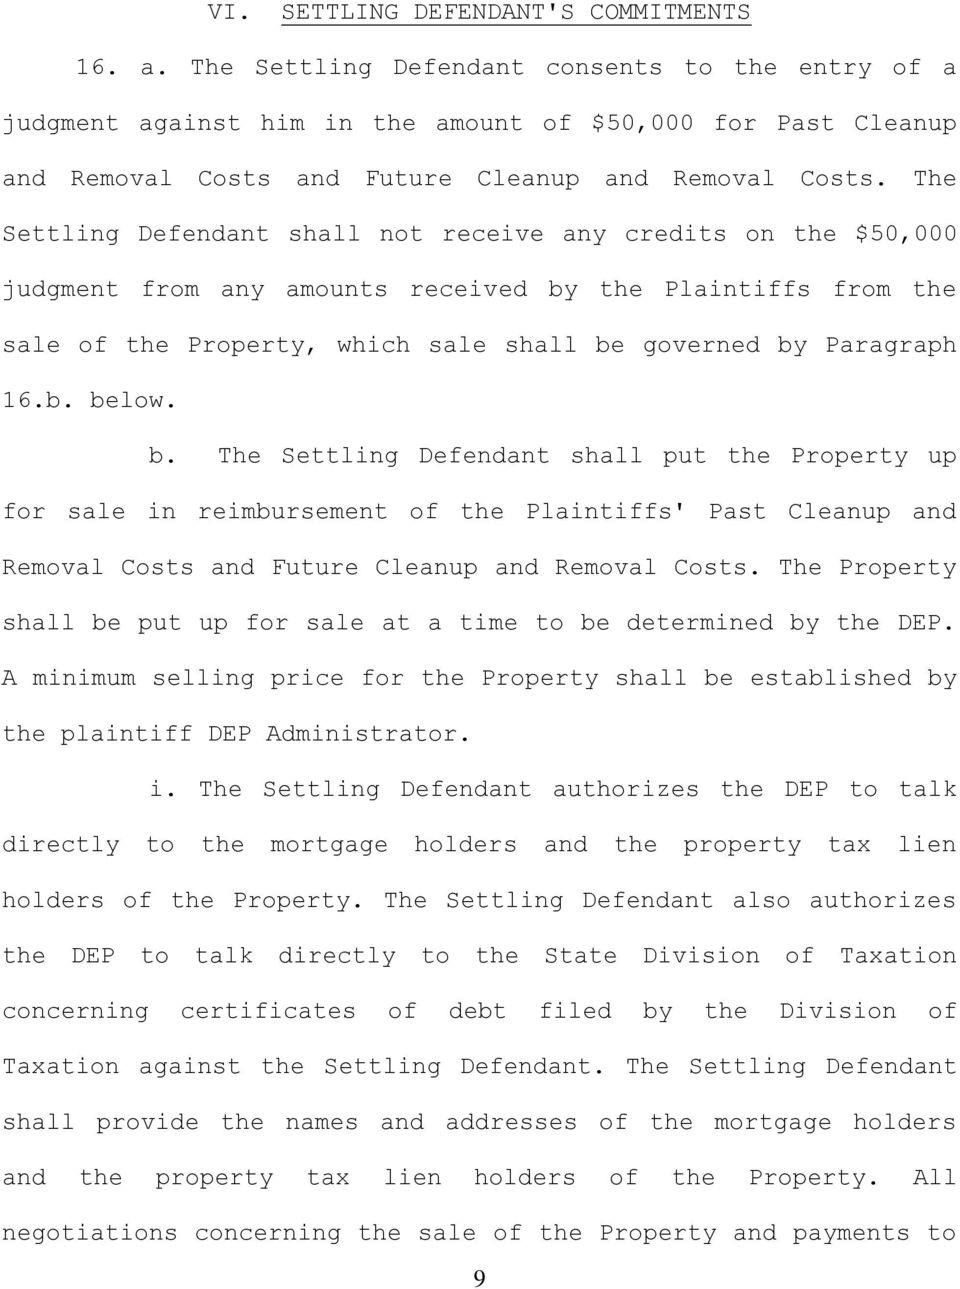 The Settling Defendant shall not receive any credits on the $50,000 judgment from any amounts received by the Plaintiffs from the sale of the Property, which sale shall be governed by Paragraph 16.b. below.